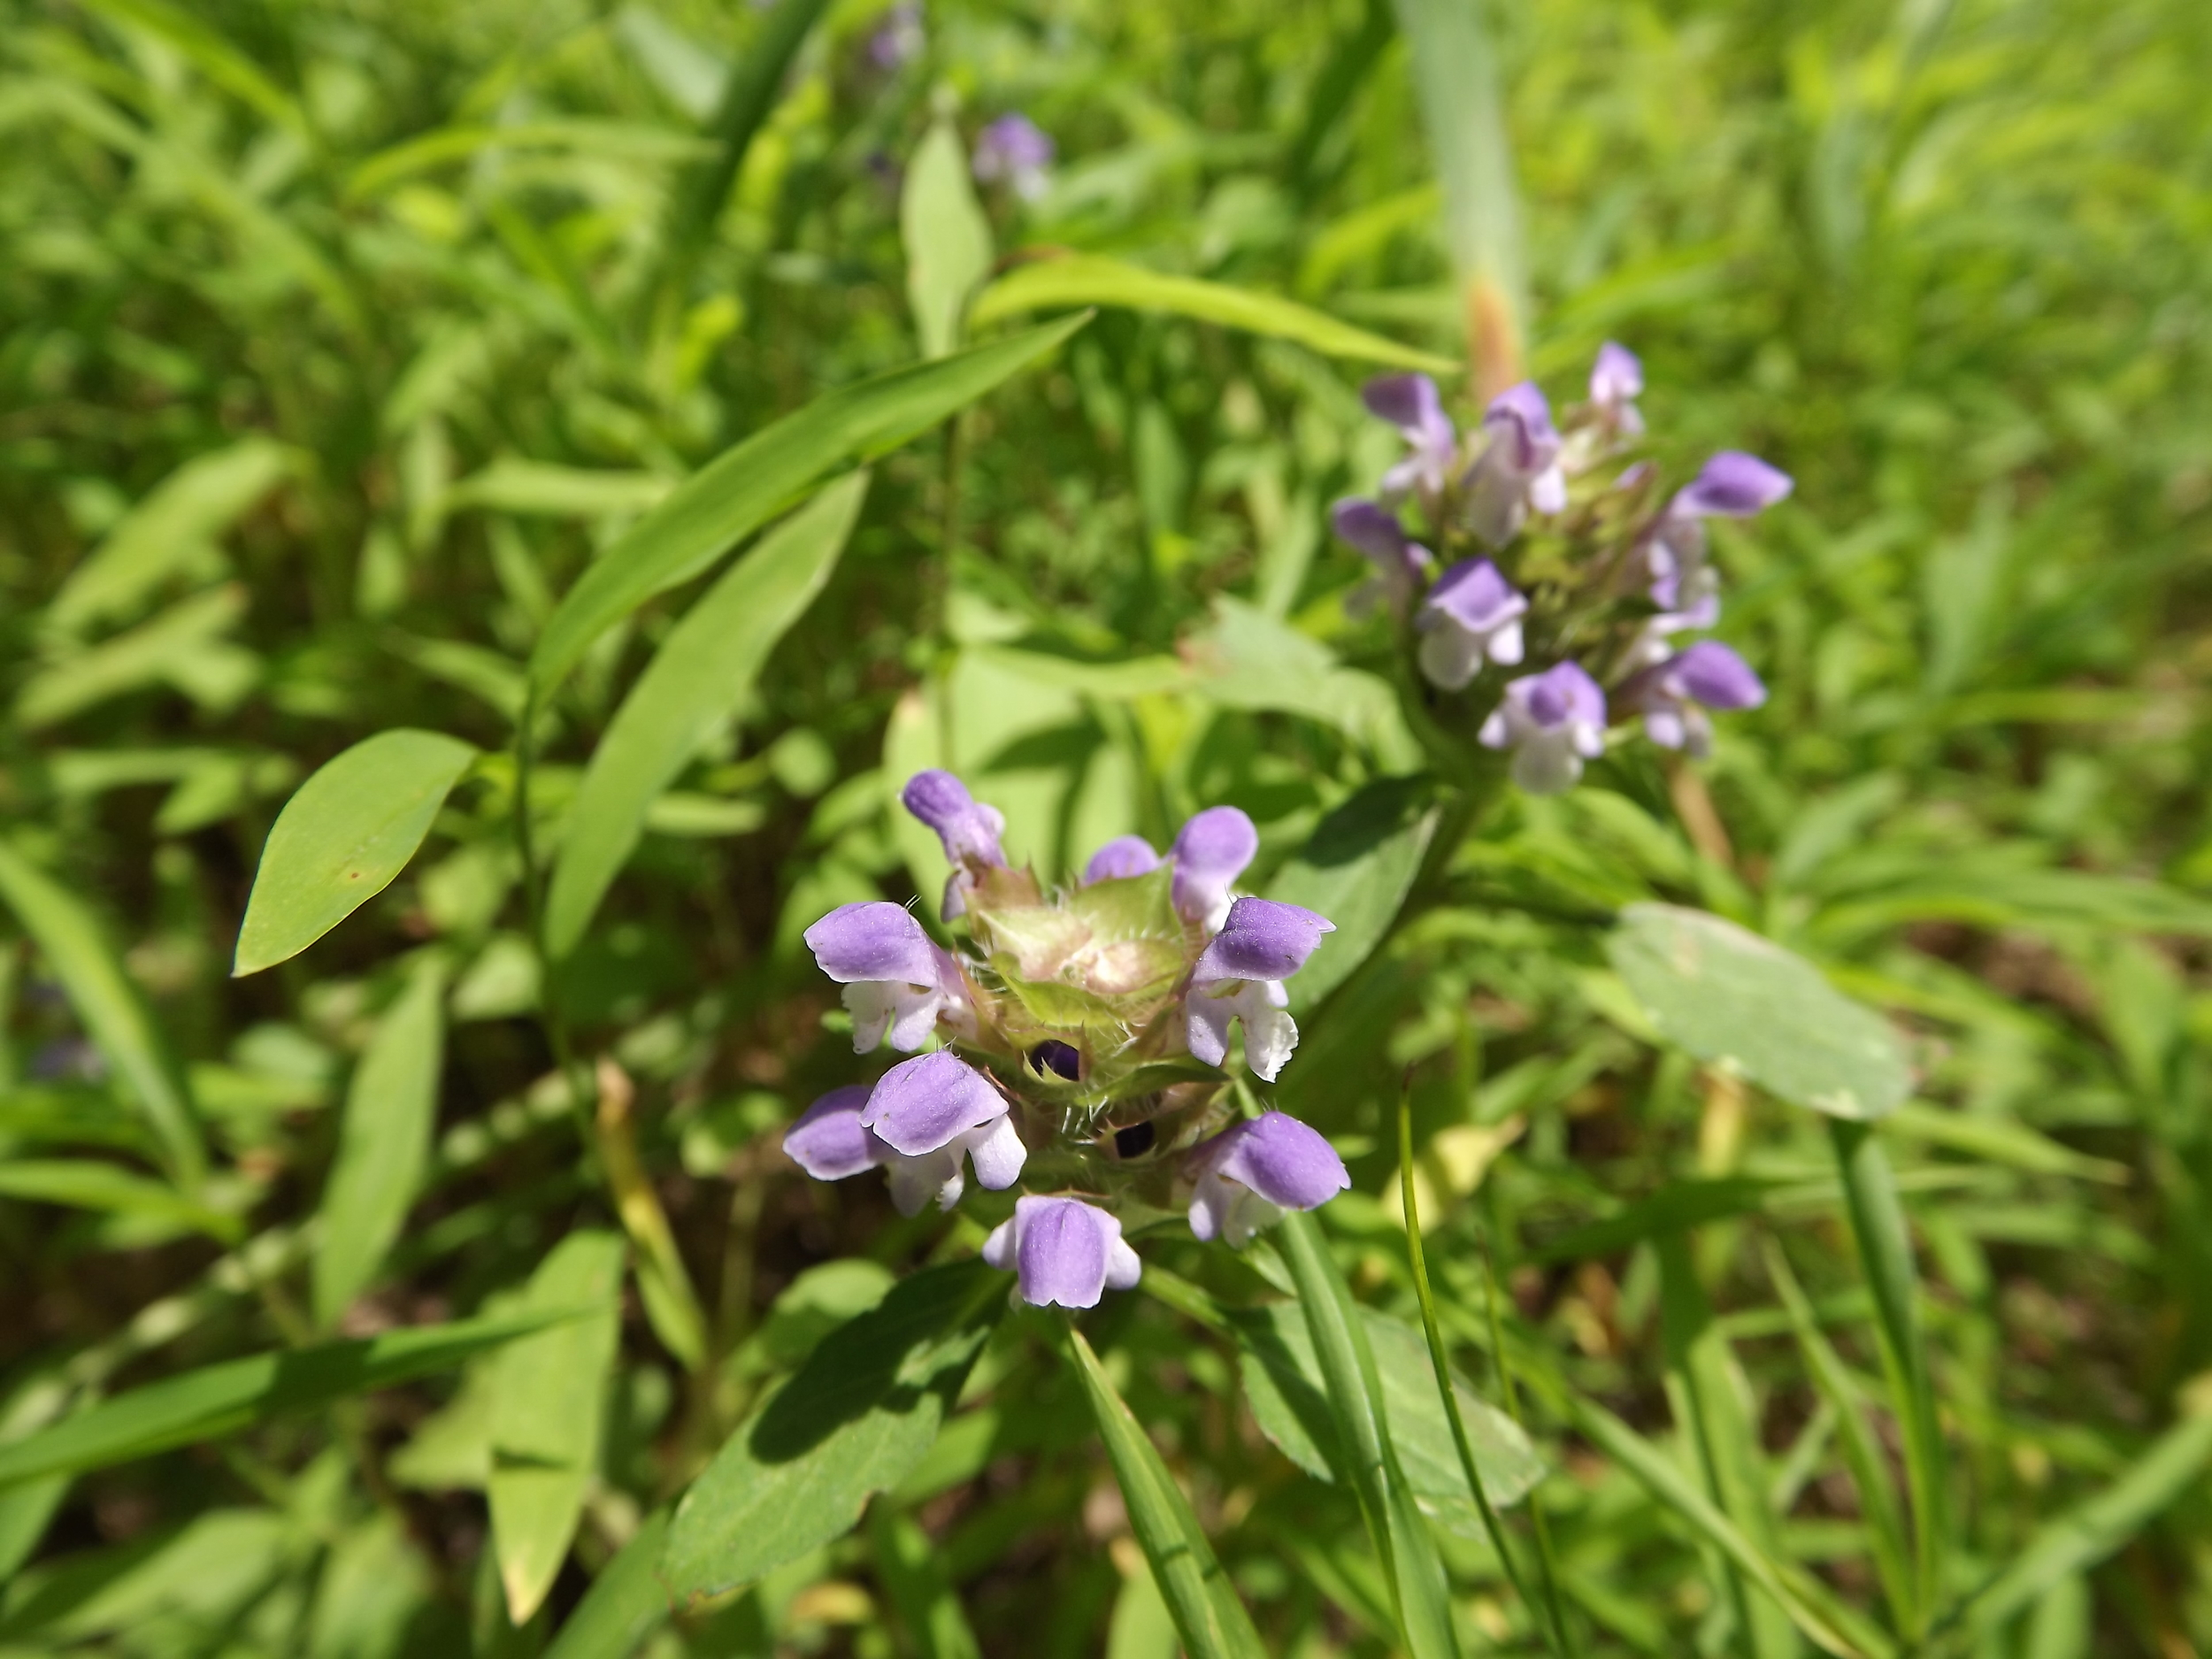 "Heal All ( Prunella vulgaris ) -  Heal All is an intersting wildflower.  It is very prevalent throughout our area and is known for its medicinal qualities, hence the name.  There are some commercial growers that sell the dried flower ""buds"" for making tea, but the I didn't think it tasted very good the couple of times I made the tea.  However, its medicinal qualities have been known for thousands of years and it was heavily used by early cultures."